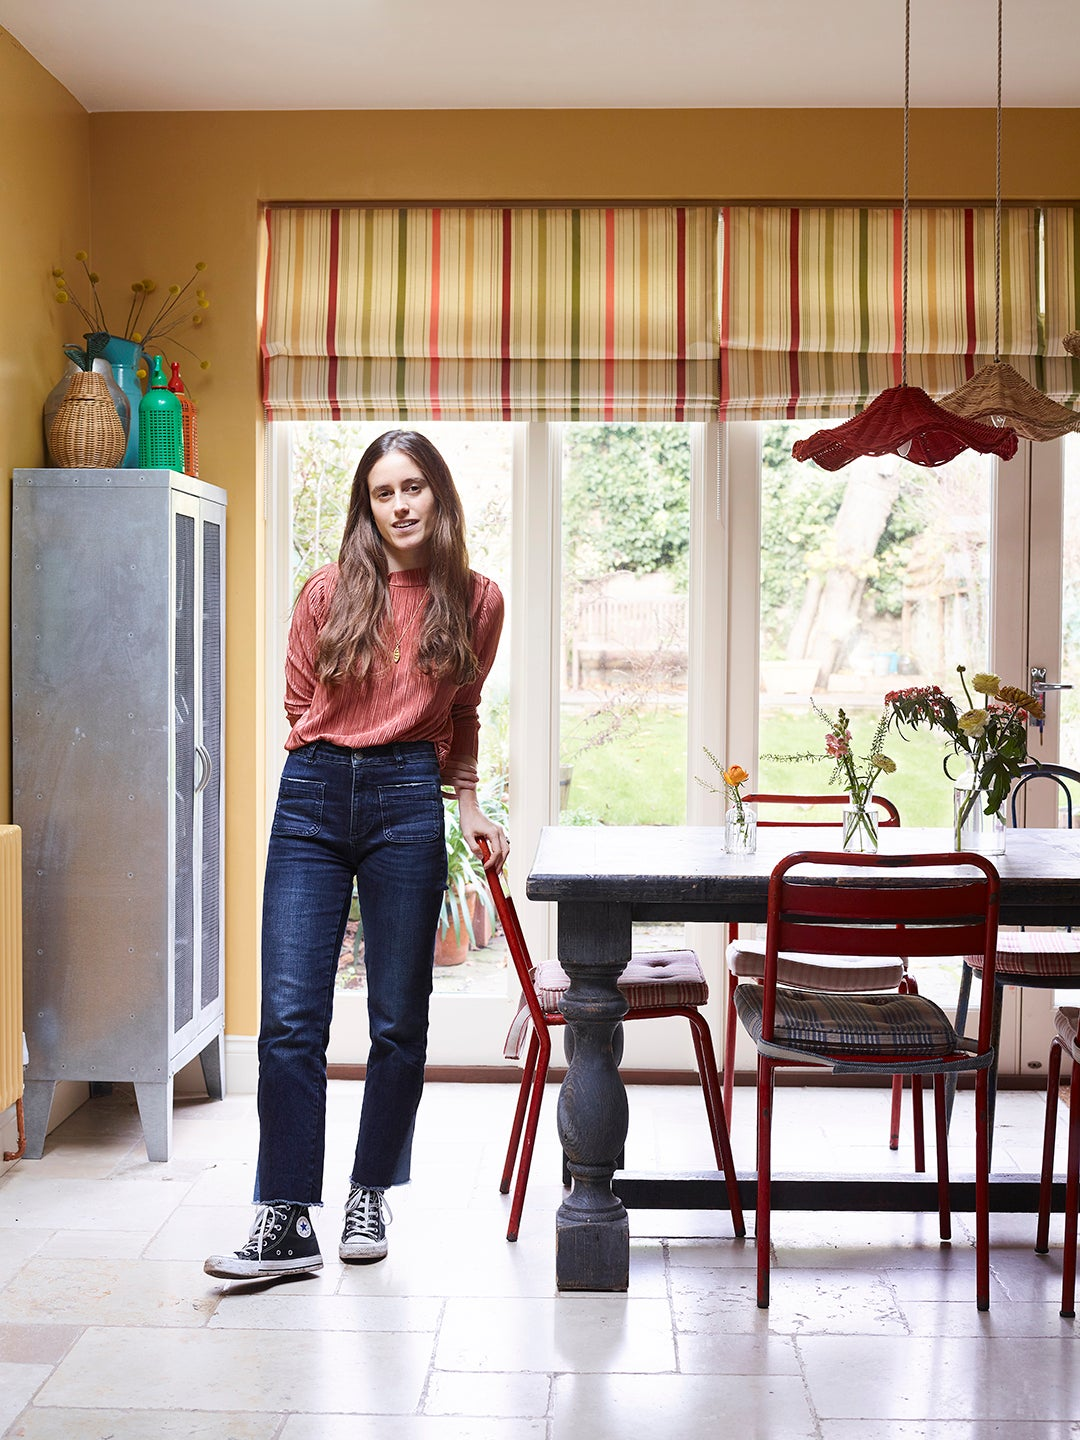 woman standing in yellow kitchen